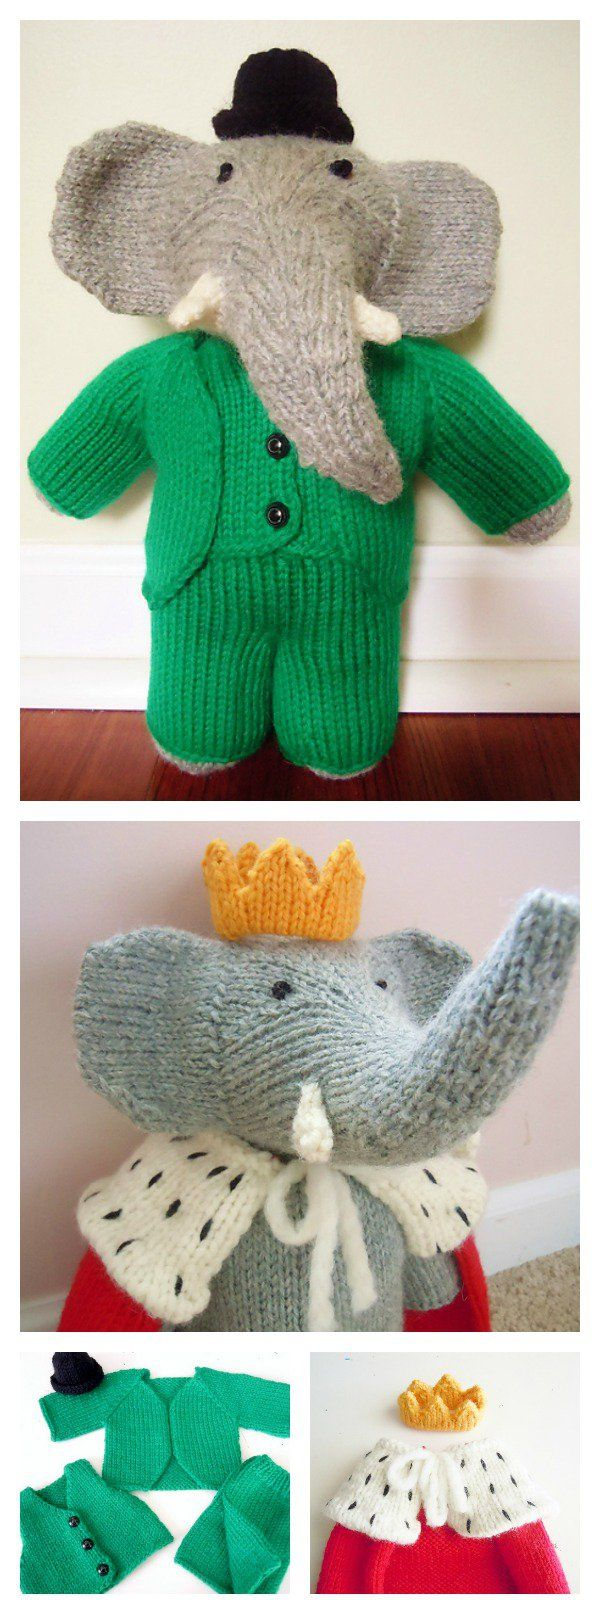 Knitting Pattern Toy Elephant : 17 Best images about Knitting on Pinterest Free pattern, Ankle socks and Shawl